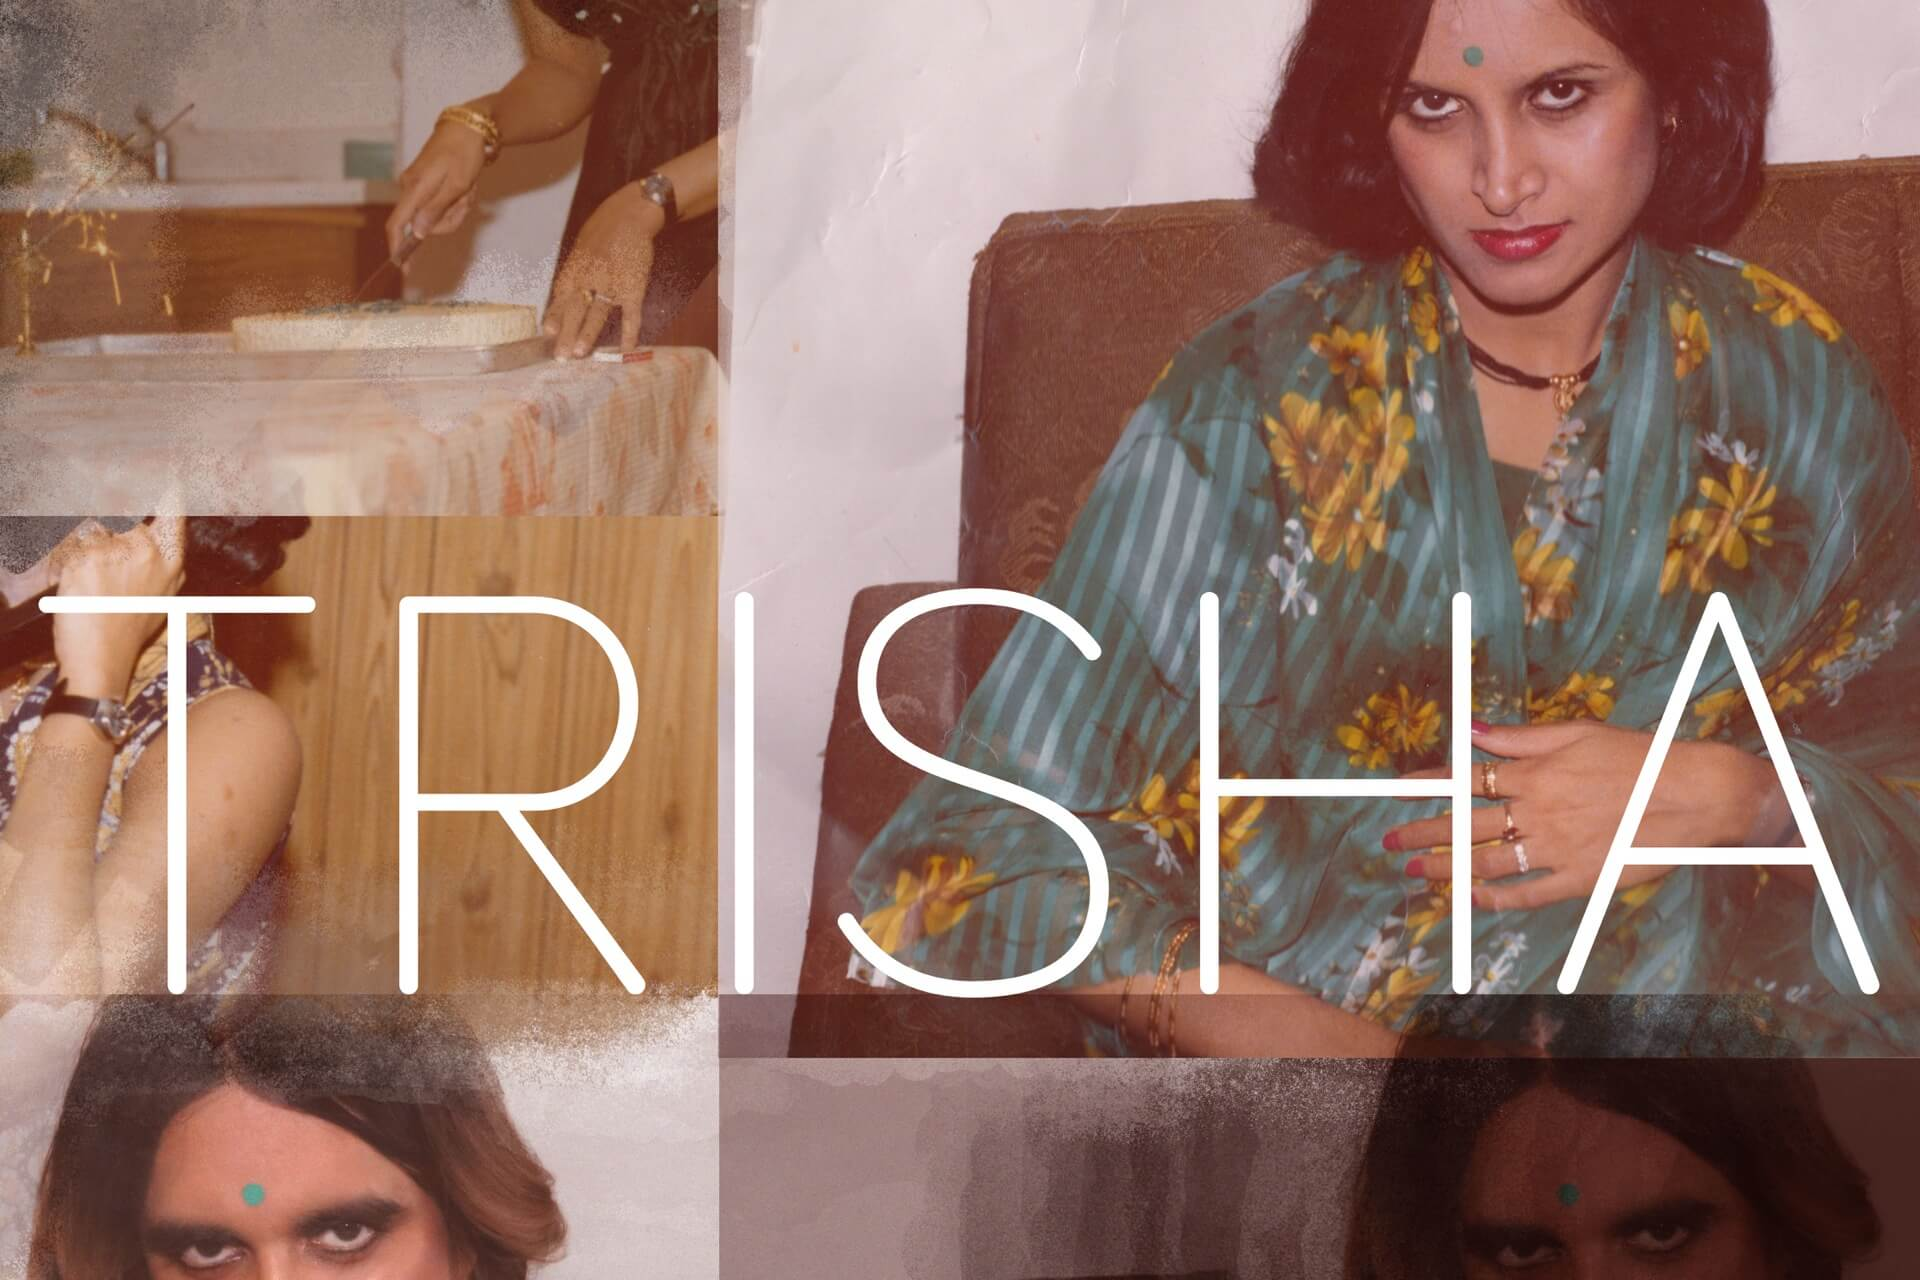 'Trisha' cover art